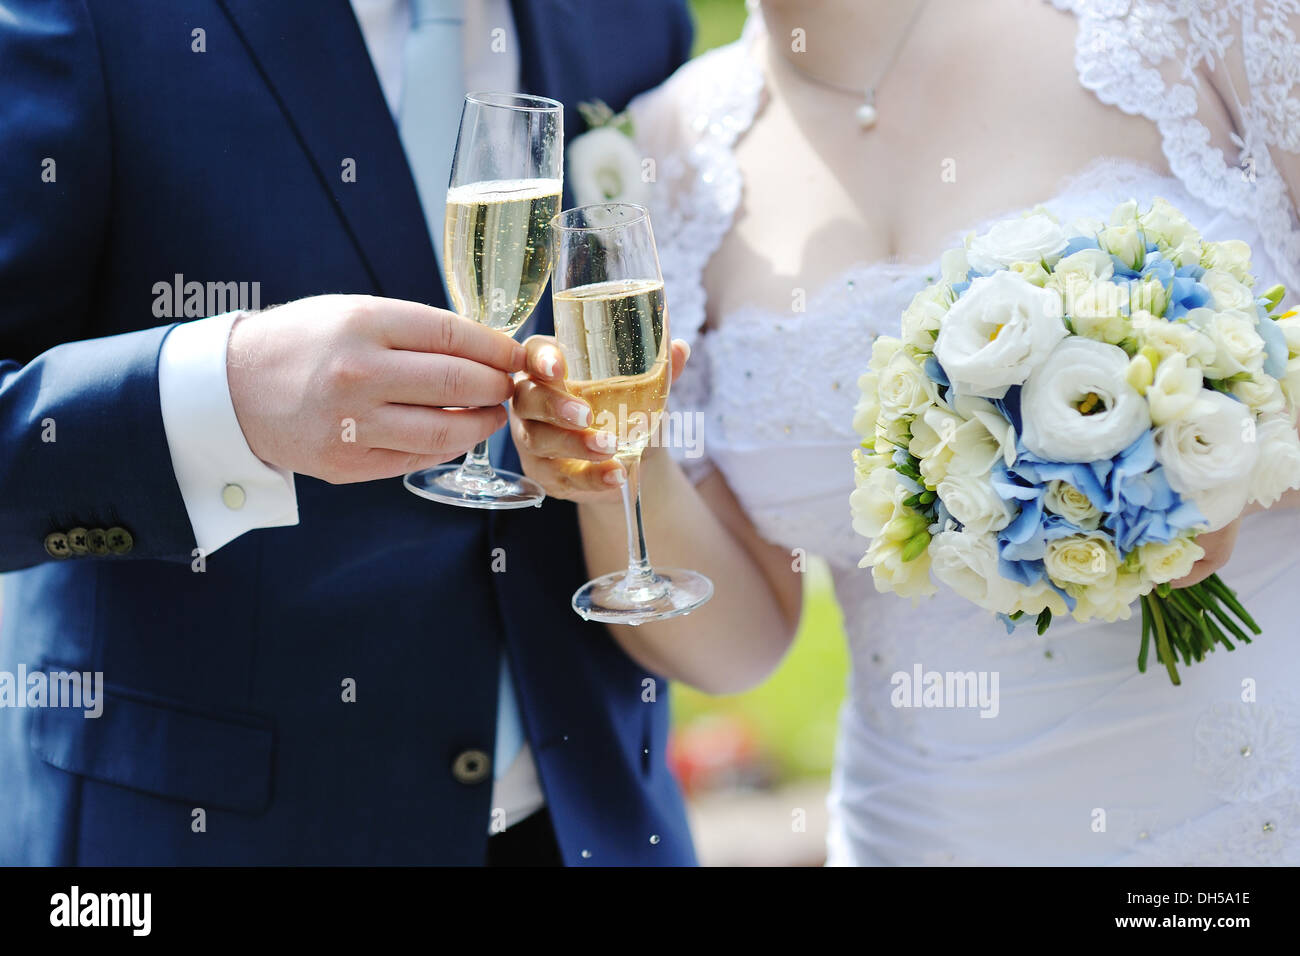 Bride and groom making a toast with champagne glasses after wedding ceremony - Stock Image